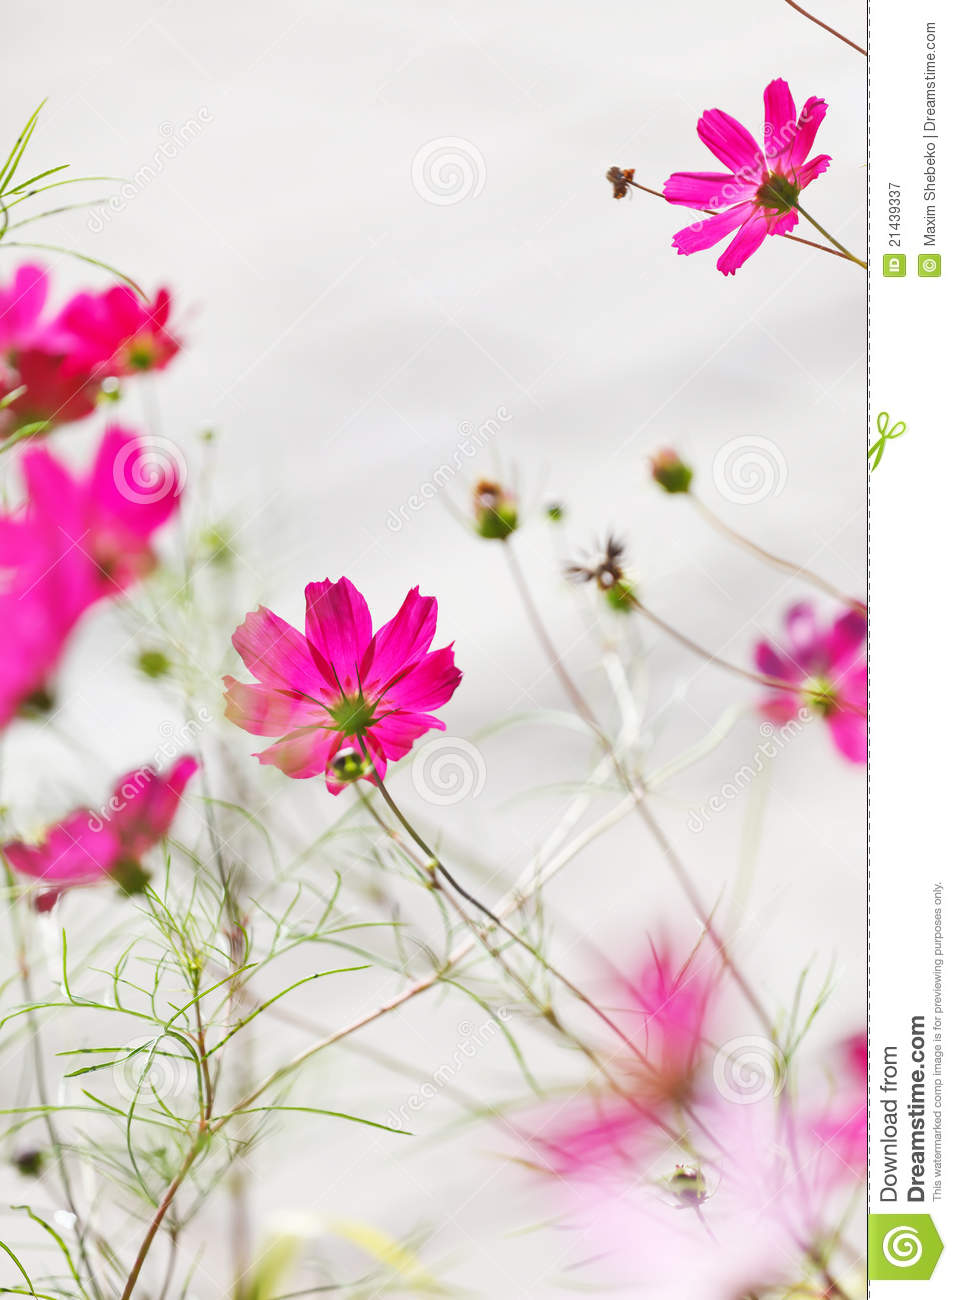 nice flowers royalty free stock photography  image, Natural flower